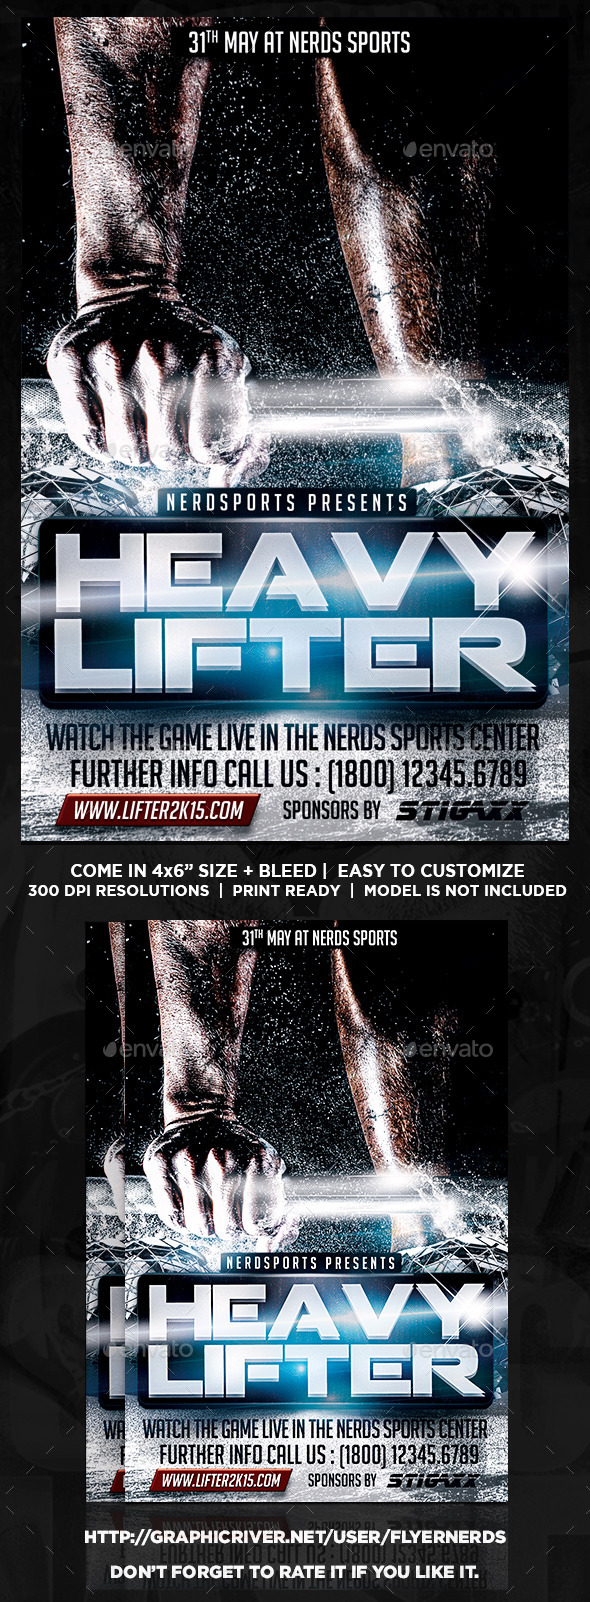 Heavy Lifter 2K15 Championships Sports Flyer - Sports Events